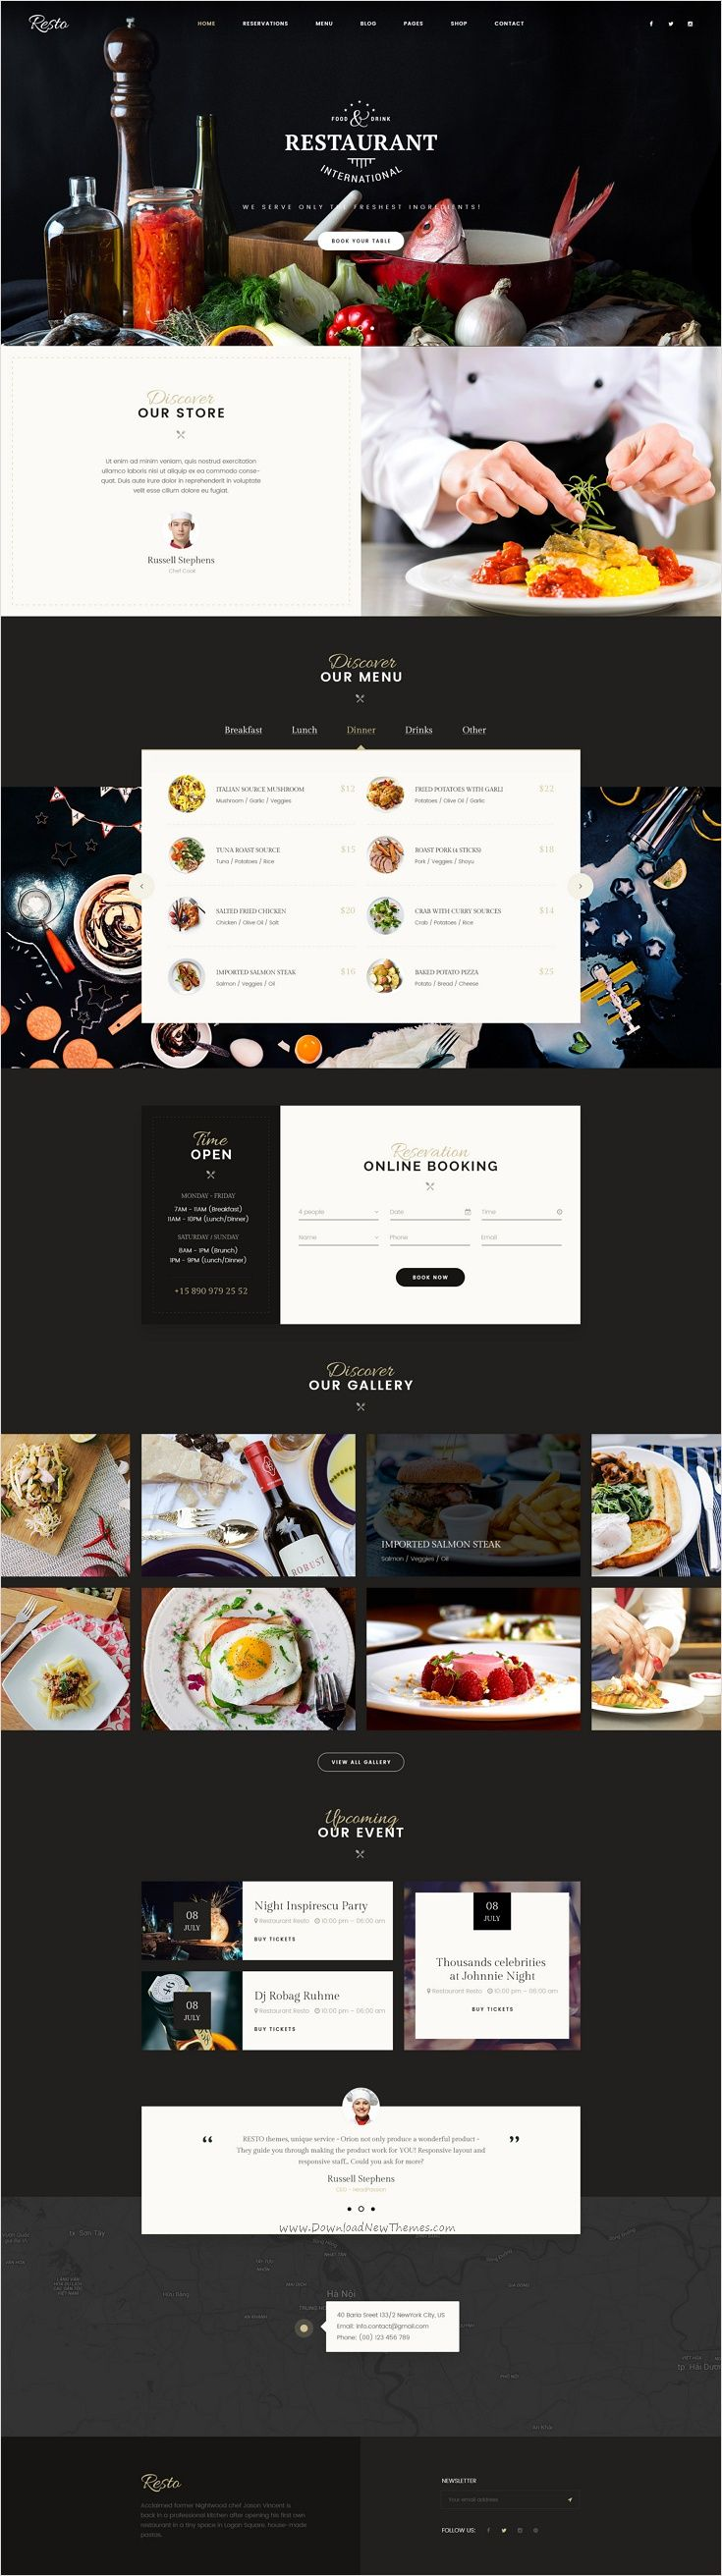 Resto is an attractive premium #PSD #theme for awesome #restaurants, cafe or food business website with 6 multipurpose homepage layouts and 22 organized PSD pages download now➩ https://themeforest.net/item/resto-multipurpose-restaurant-cafe-psd-template/17518251?ref=Datasata